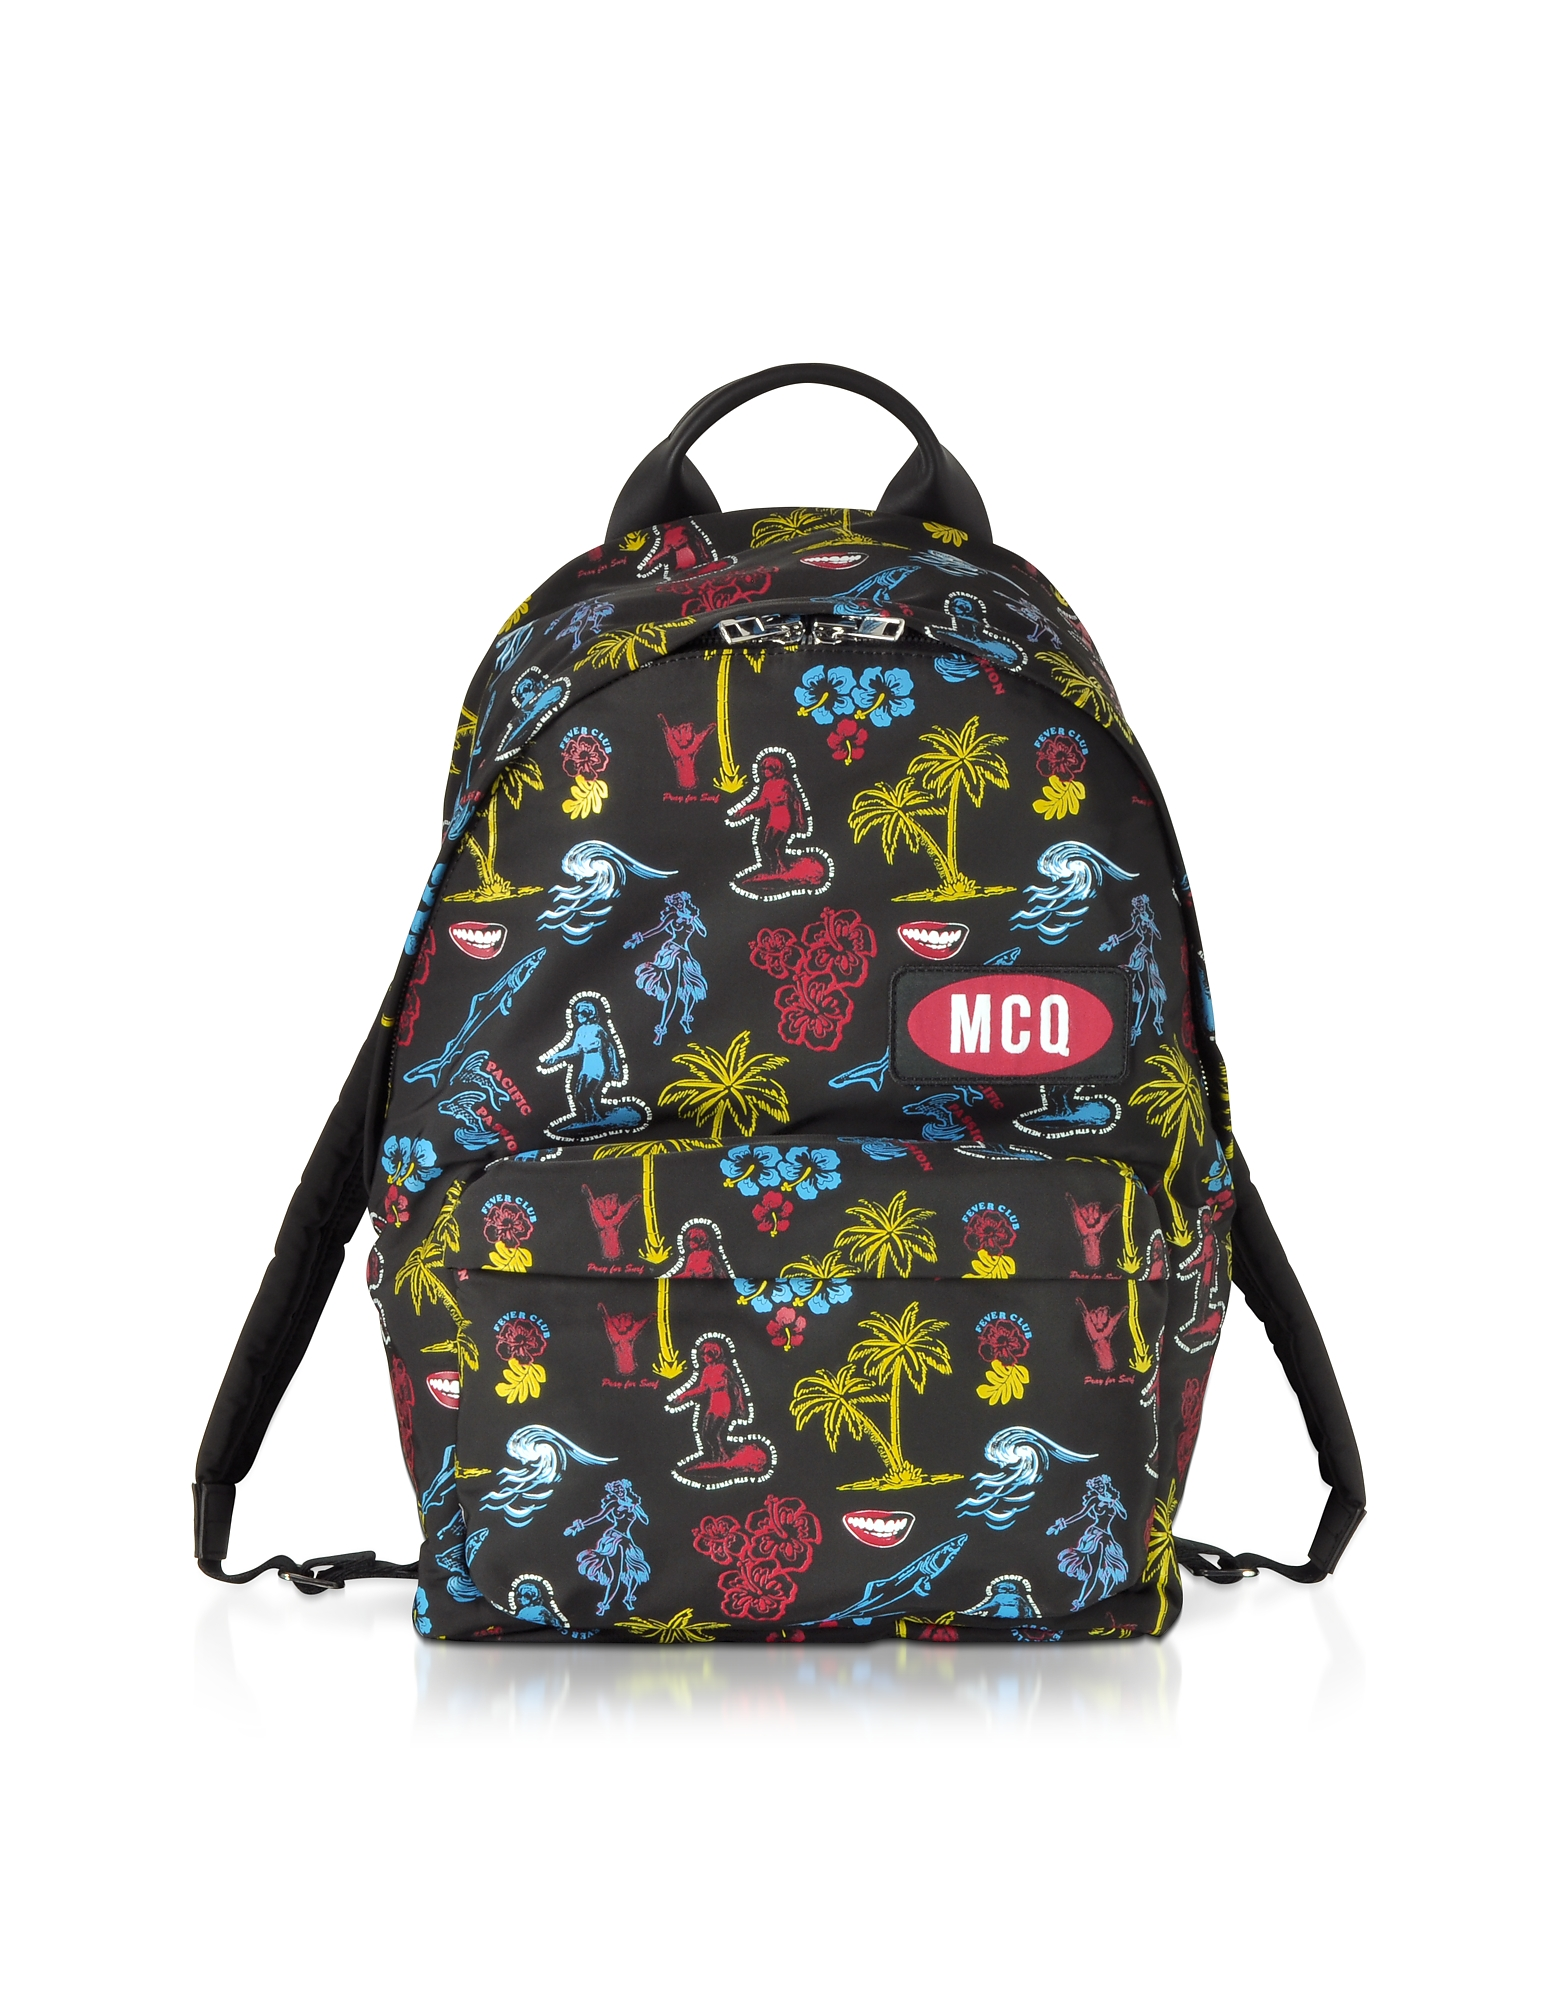 McQ Alexander McQueen Designer Men's Bags, Darkest Black Printed Nylon Classic Backpack